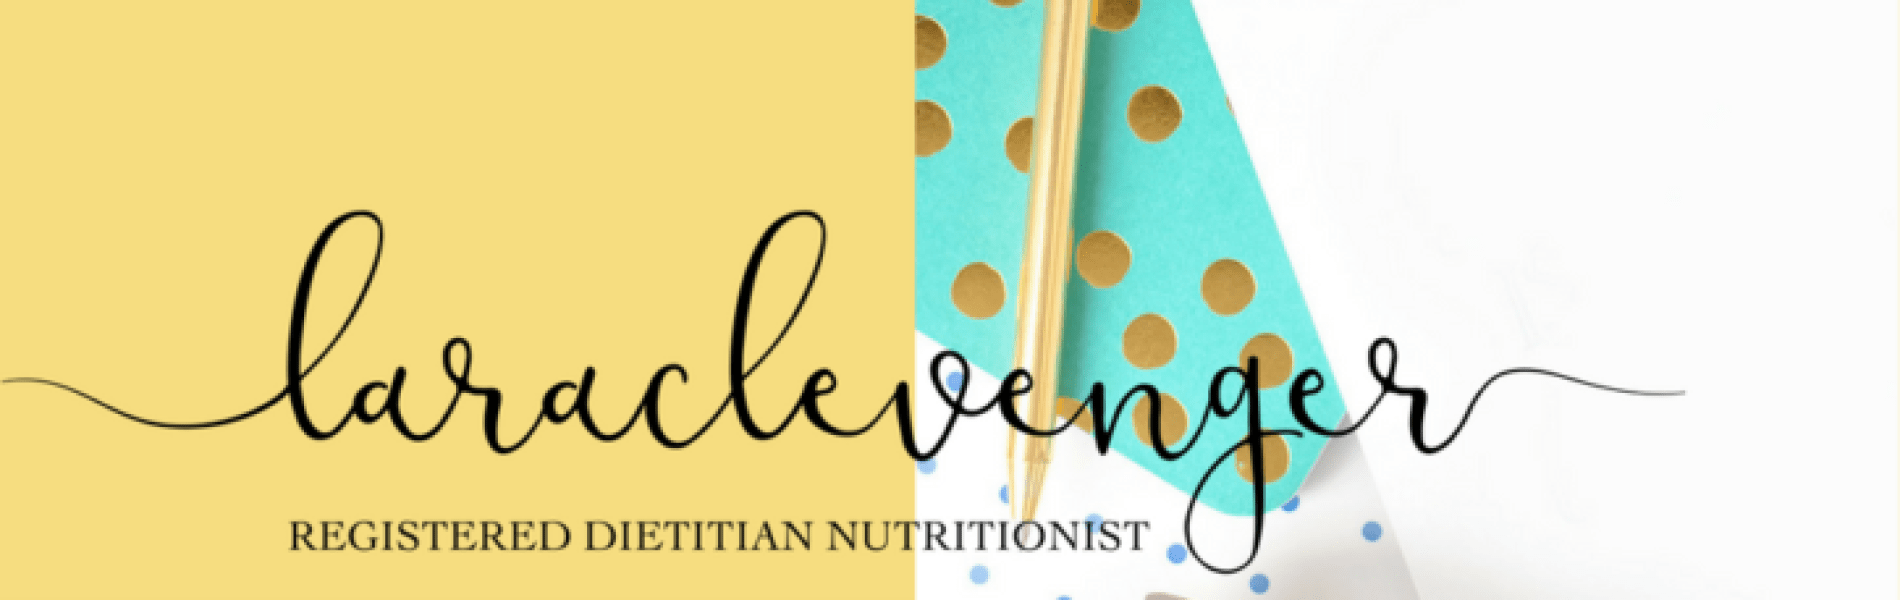 Private practice dietitian specializing in anti-inflammatory, low carb, and ketogenic lifestyles. Helping clients in Volusia County and virtually.